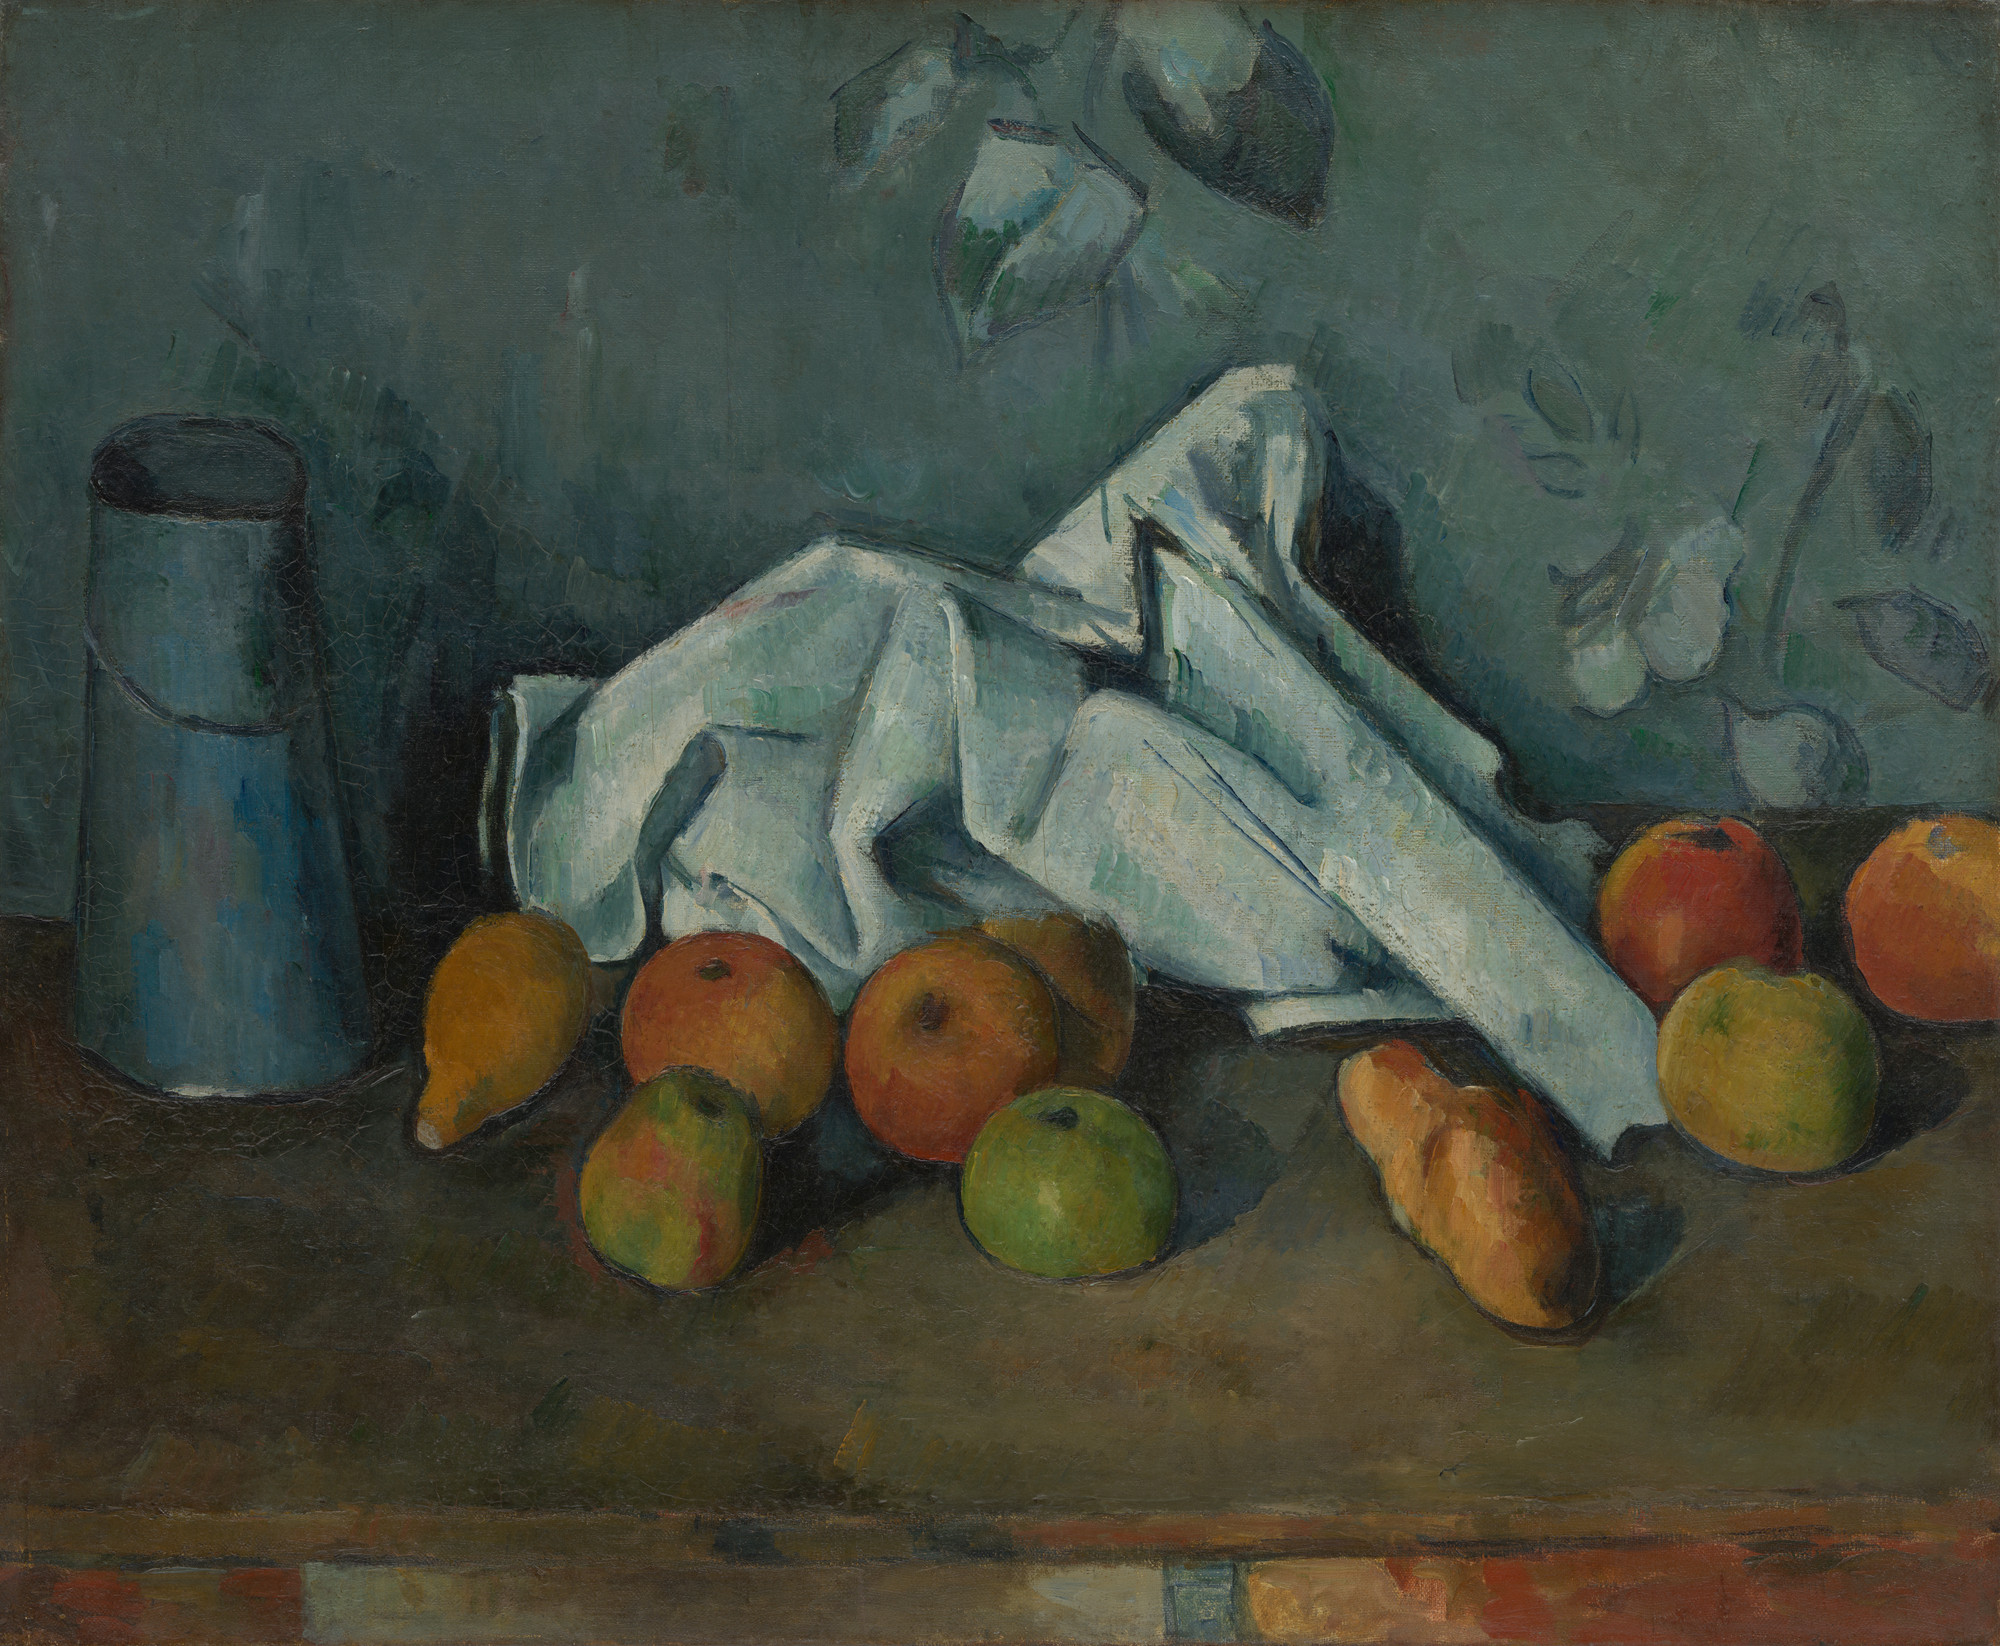 Paul Cézanne. Milk Can and Apples. 1879-80